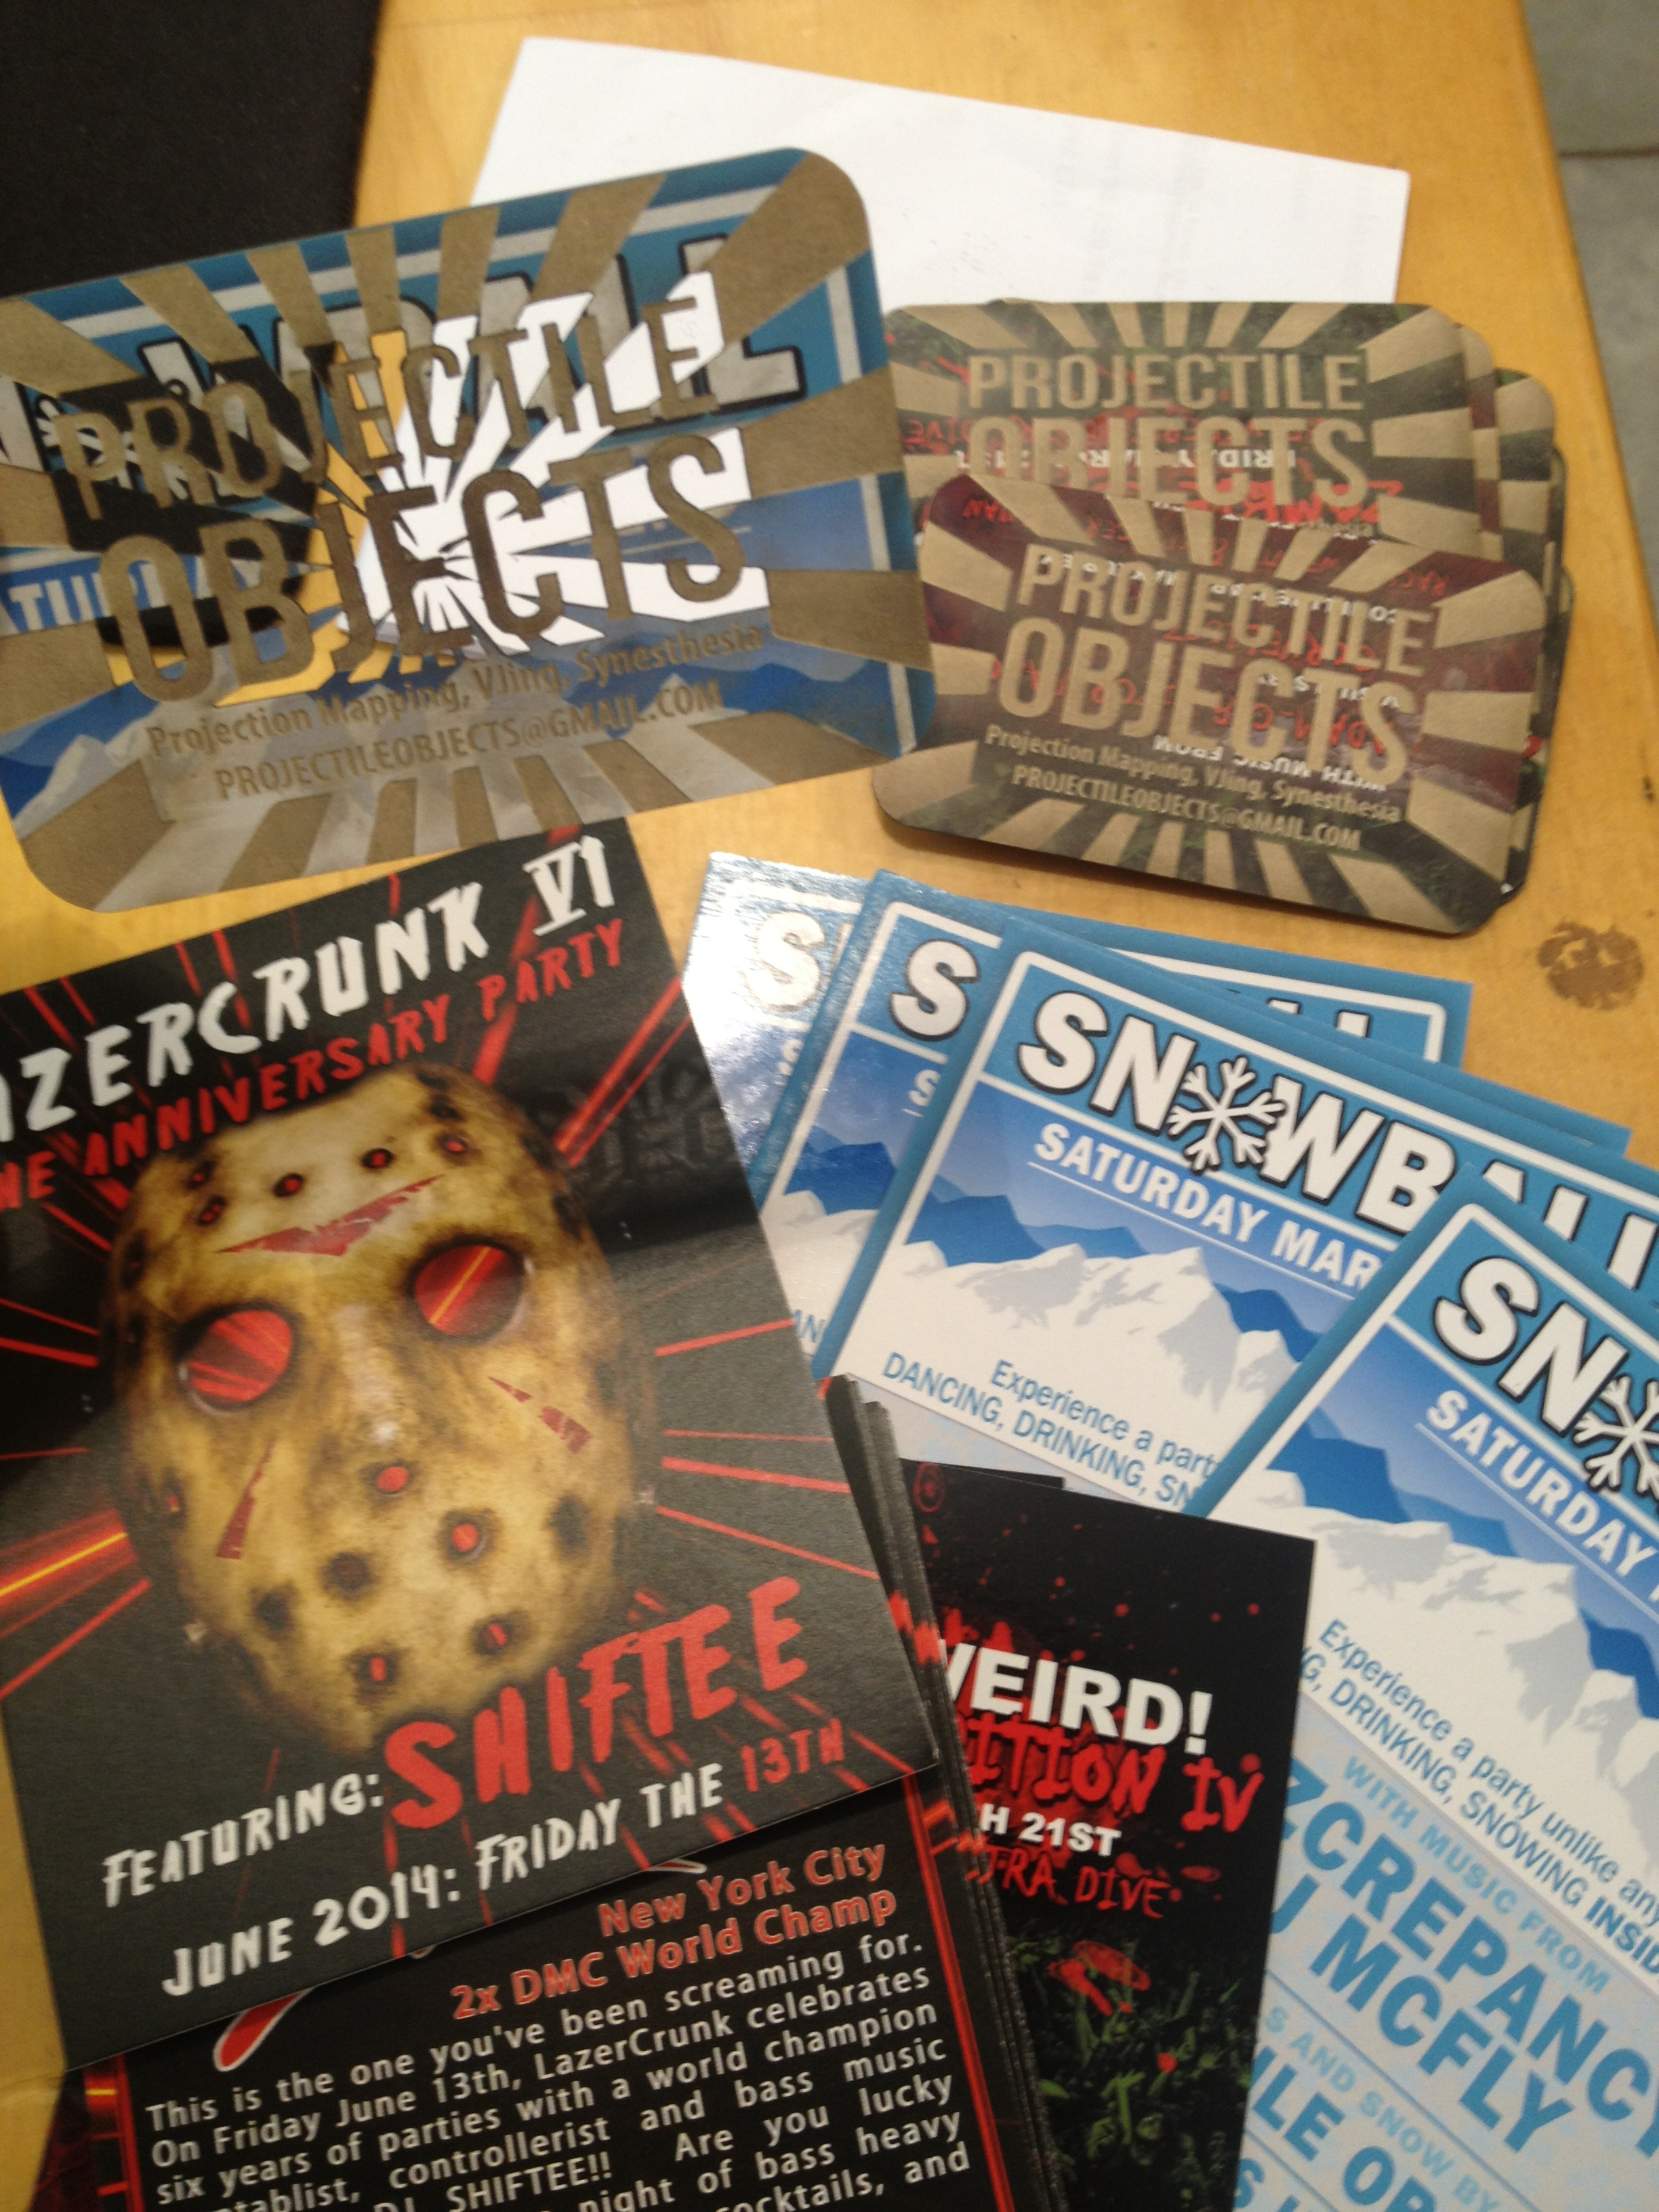 repurposing old party flyers as business cards – projectile objects